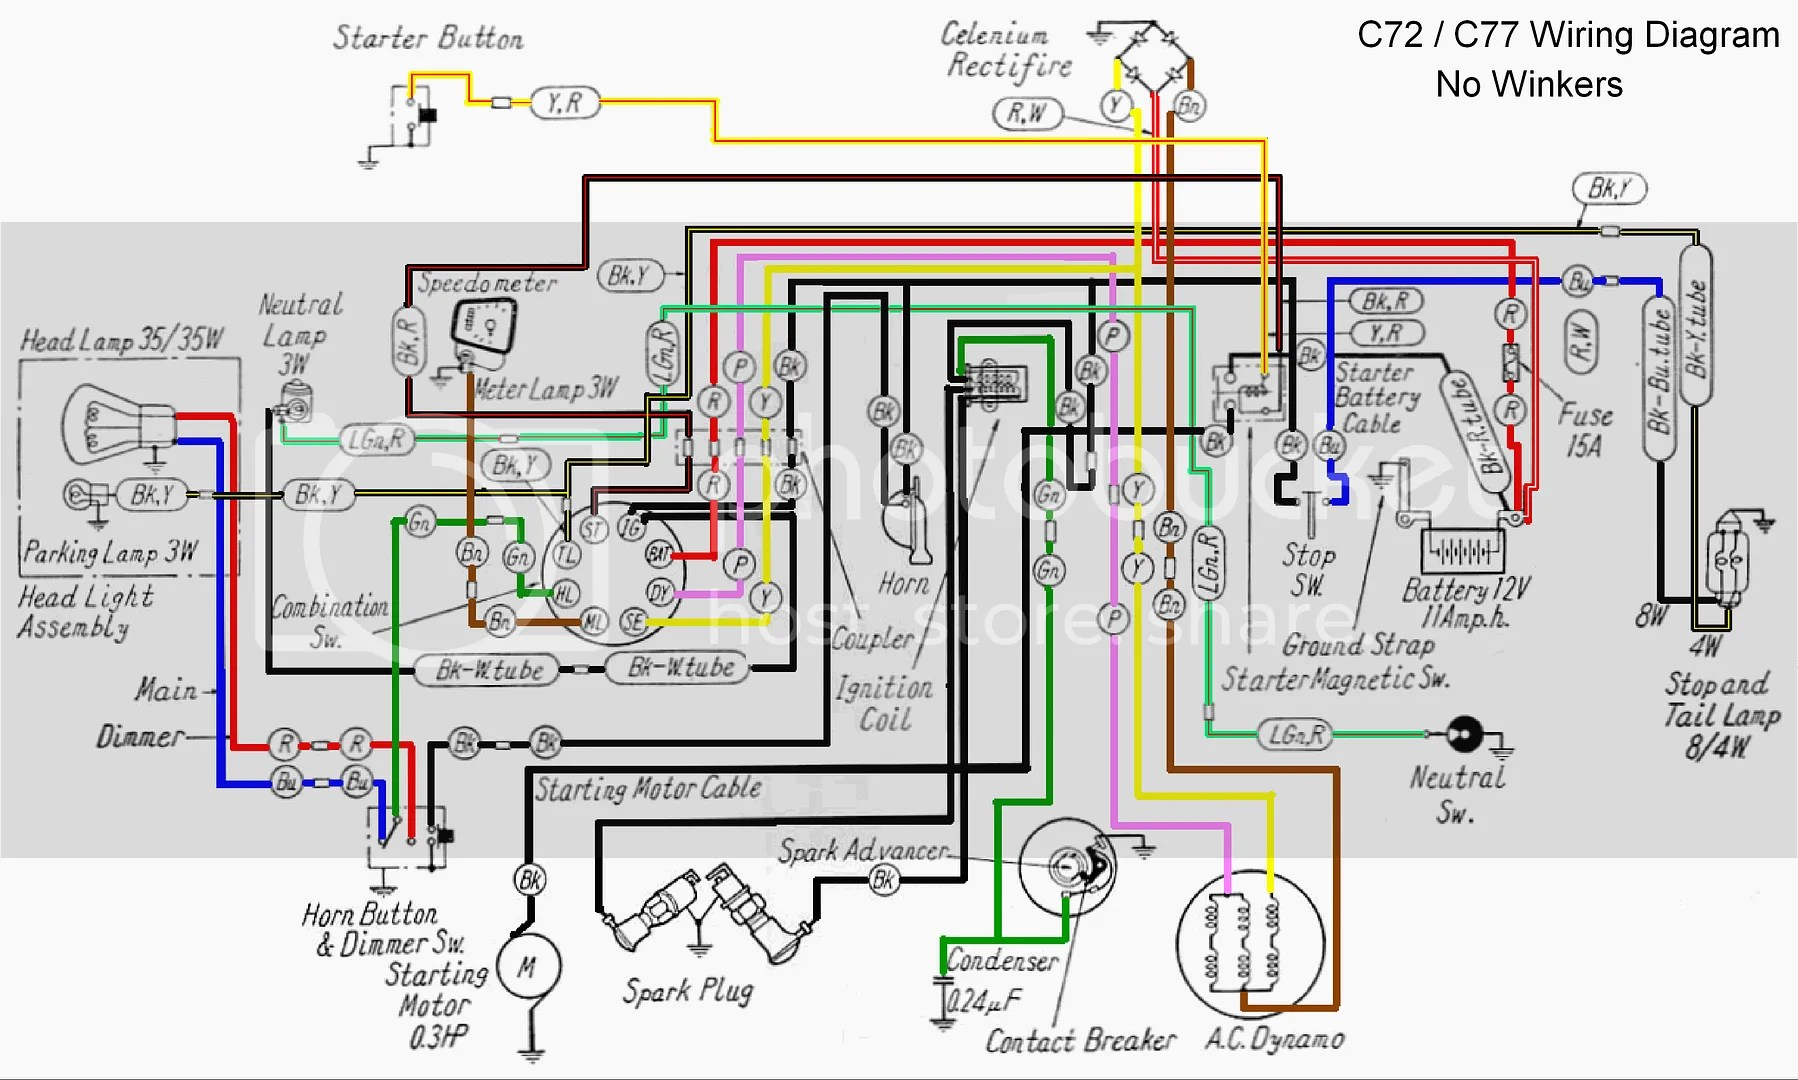 honda305 com forum view topic ca77 wiring diagram with andi was goofing off at work one [ 1798 x 1080 Pixel ]